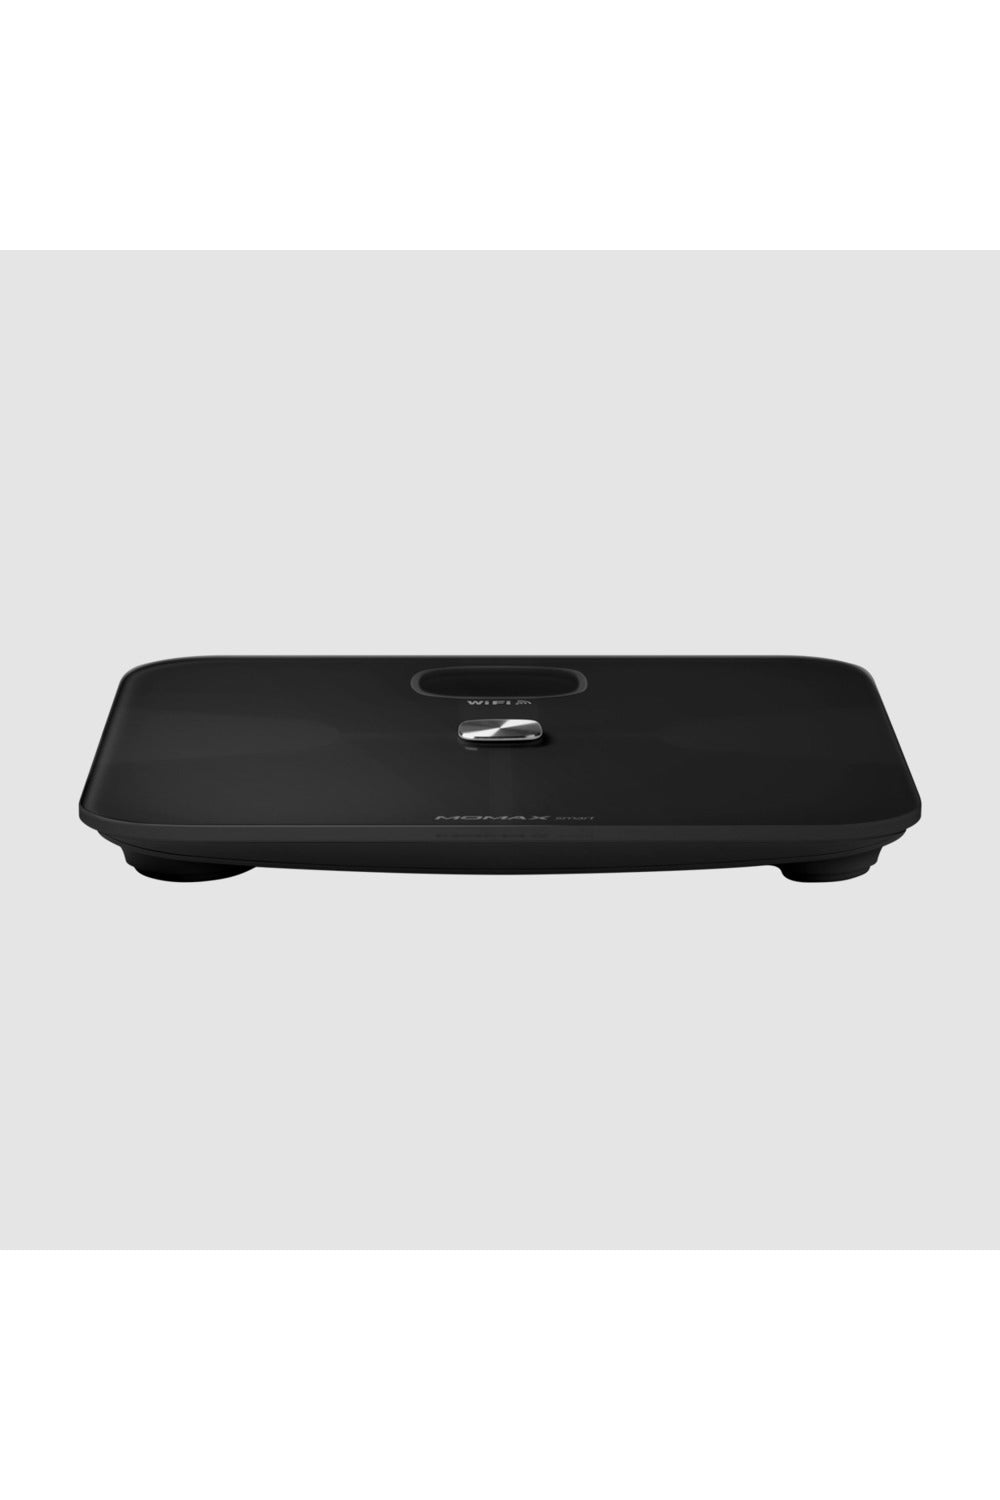 Momax HeaIth Tracker IoT Body Scale - Black